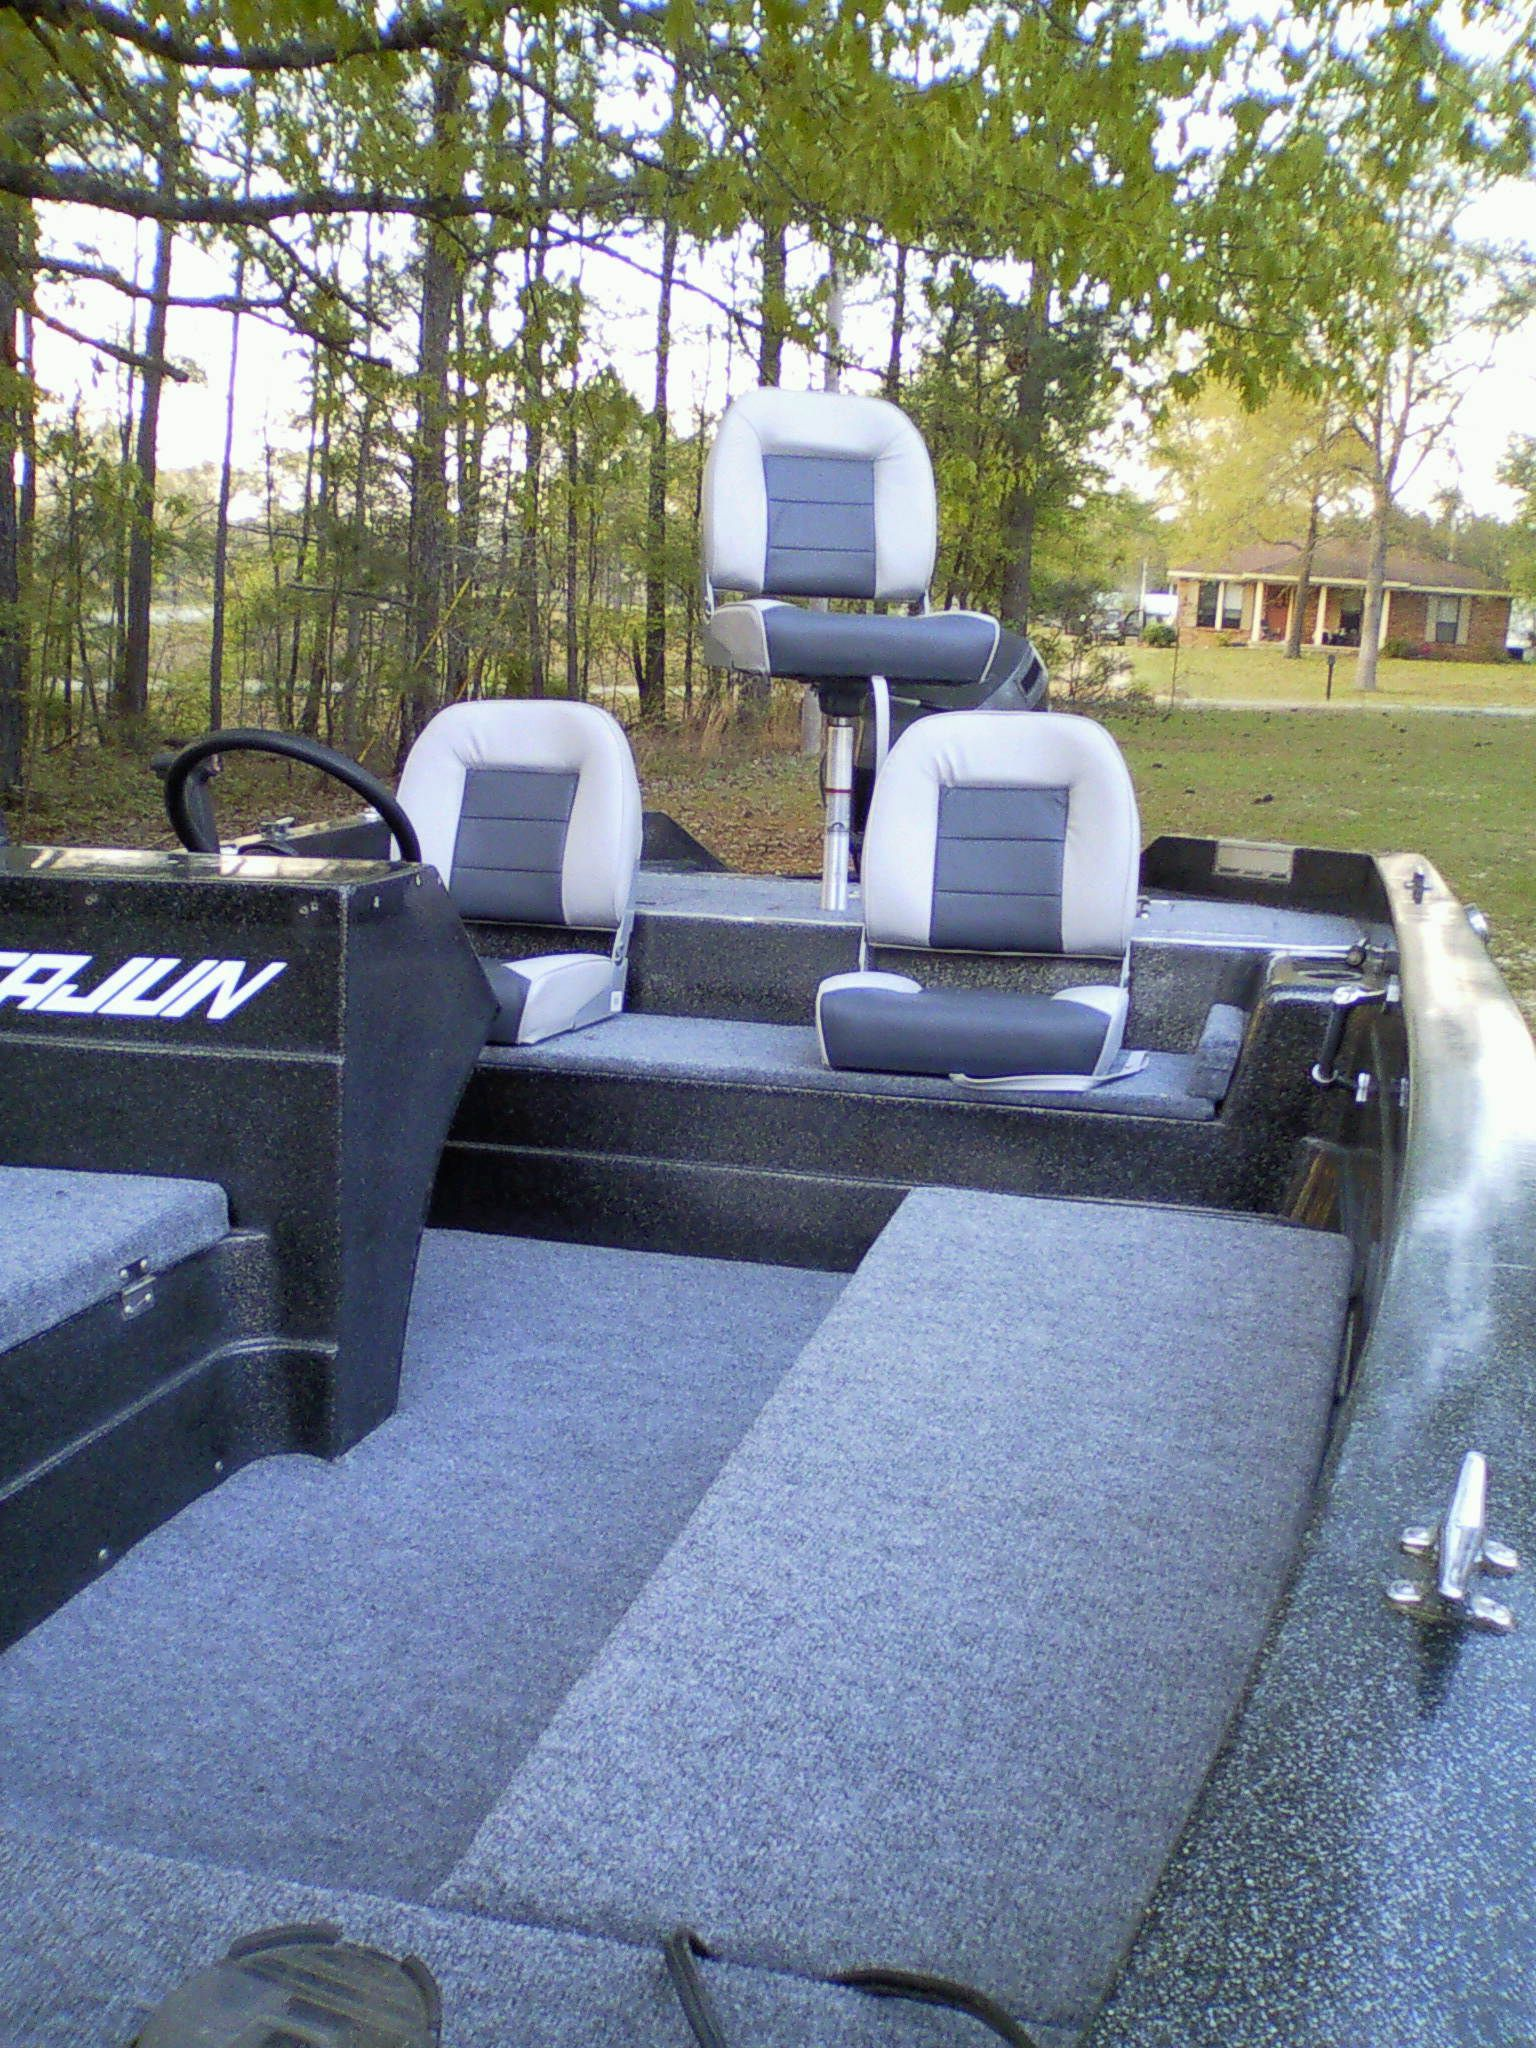 This is my 1989 Cajun bass boat, if you want to save money